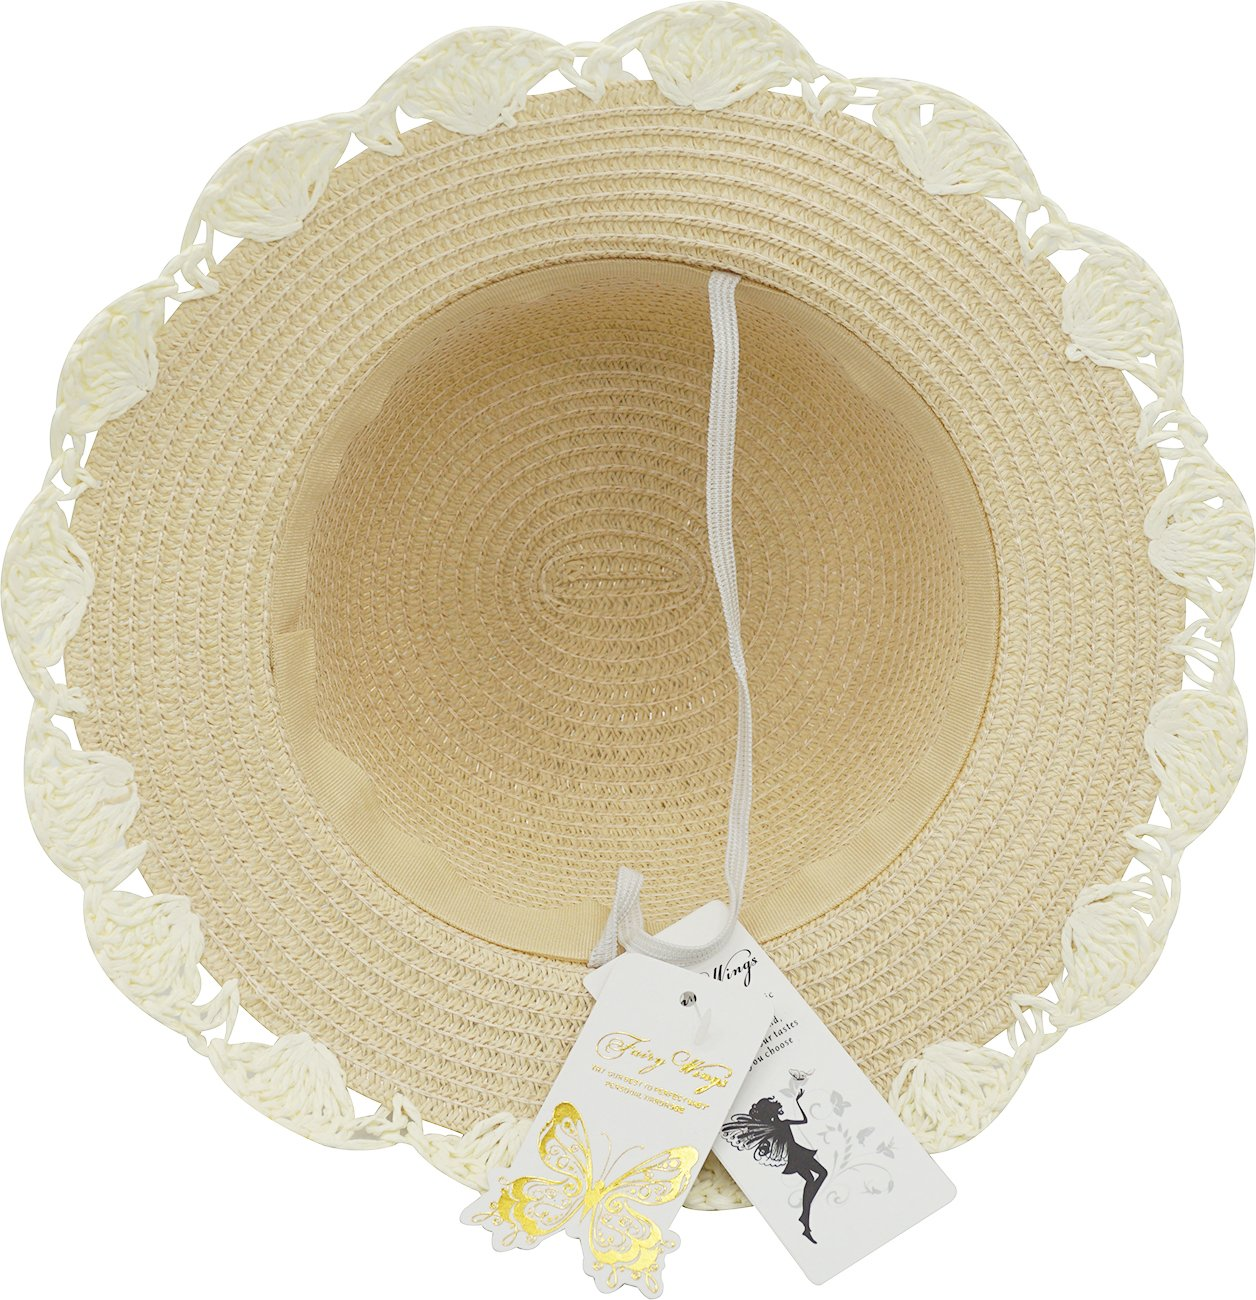 Little Children Babies Lace Bowknot Princess Sun Bonnet Straw Hat by Fairy Wings (Image #4)